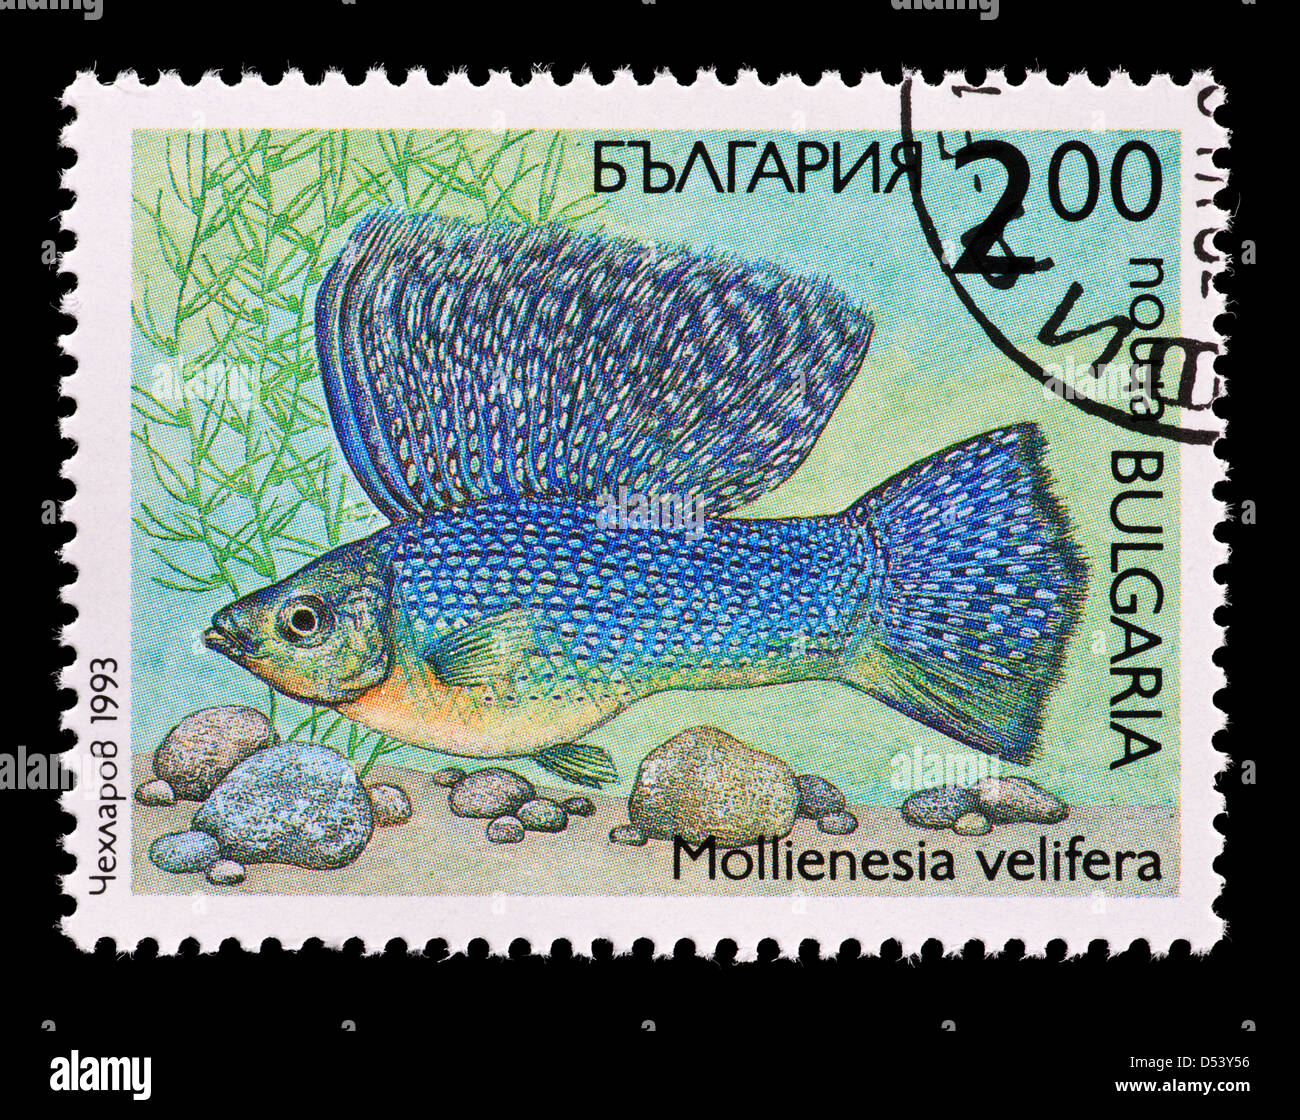 Postage stamp from Bulgaria depicting a tropical Molly fish (Poecilia velifera) Stock Photo